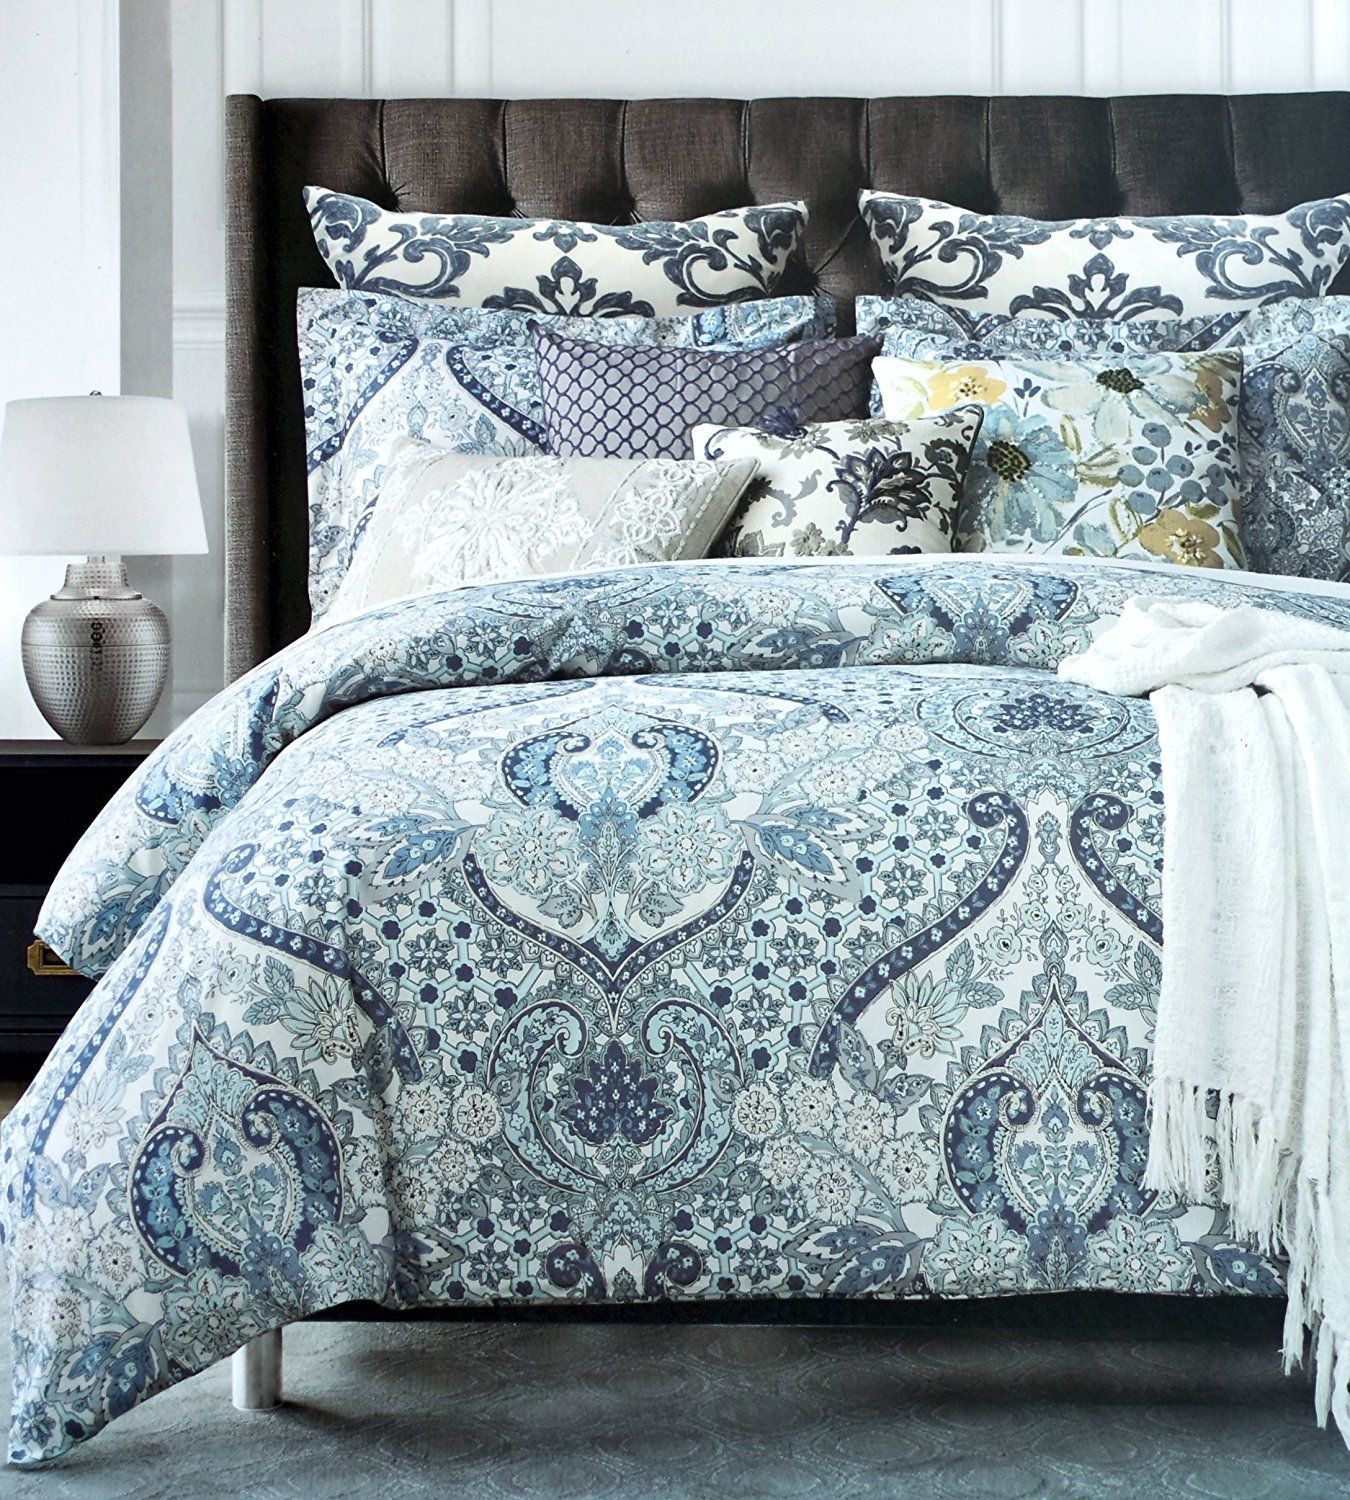 Boho Chic Bedding Sets with More | Pinterest | Bed sets ...